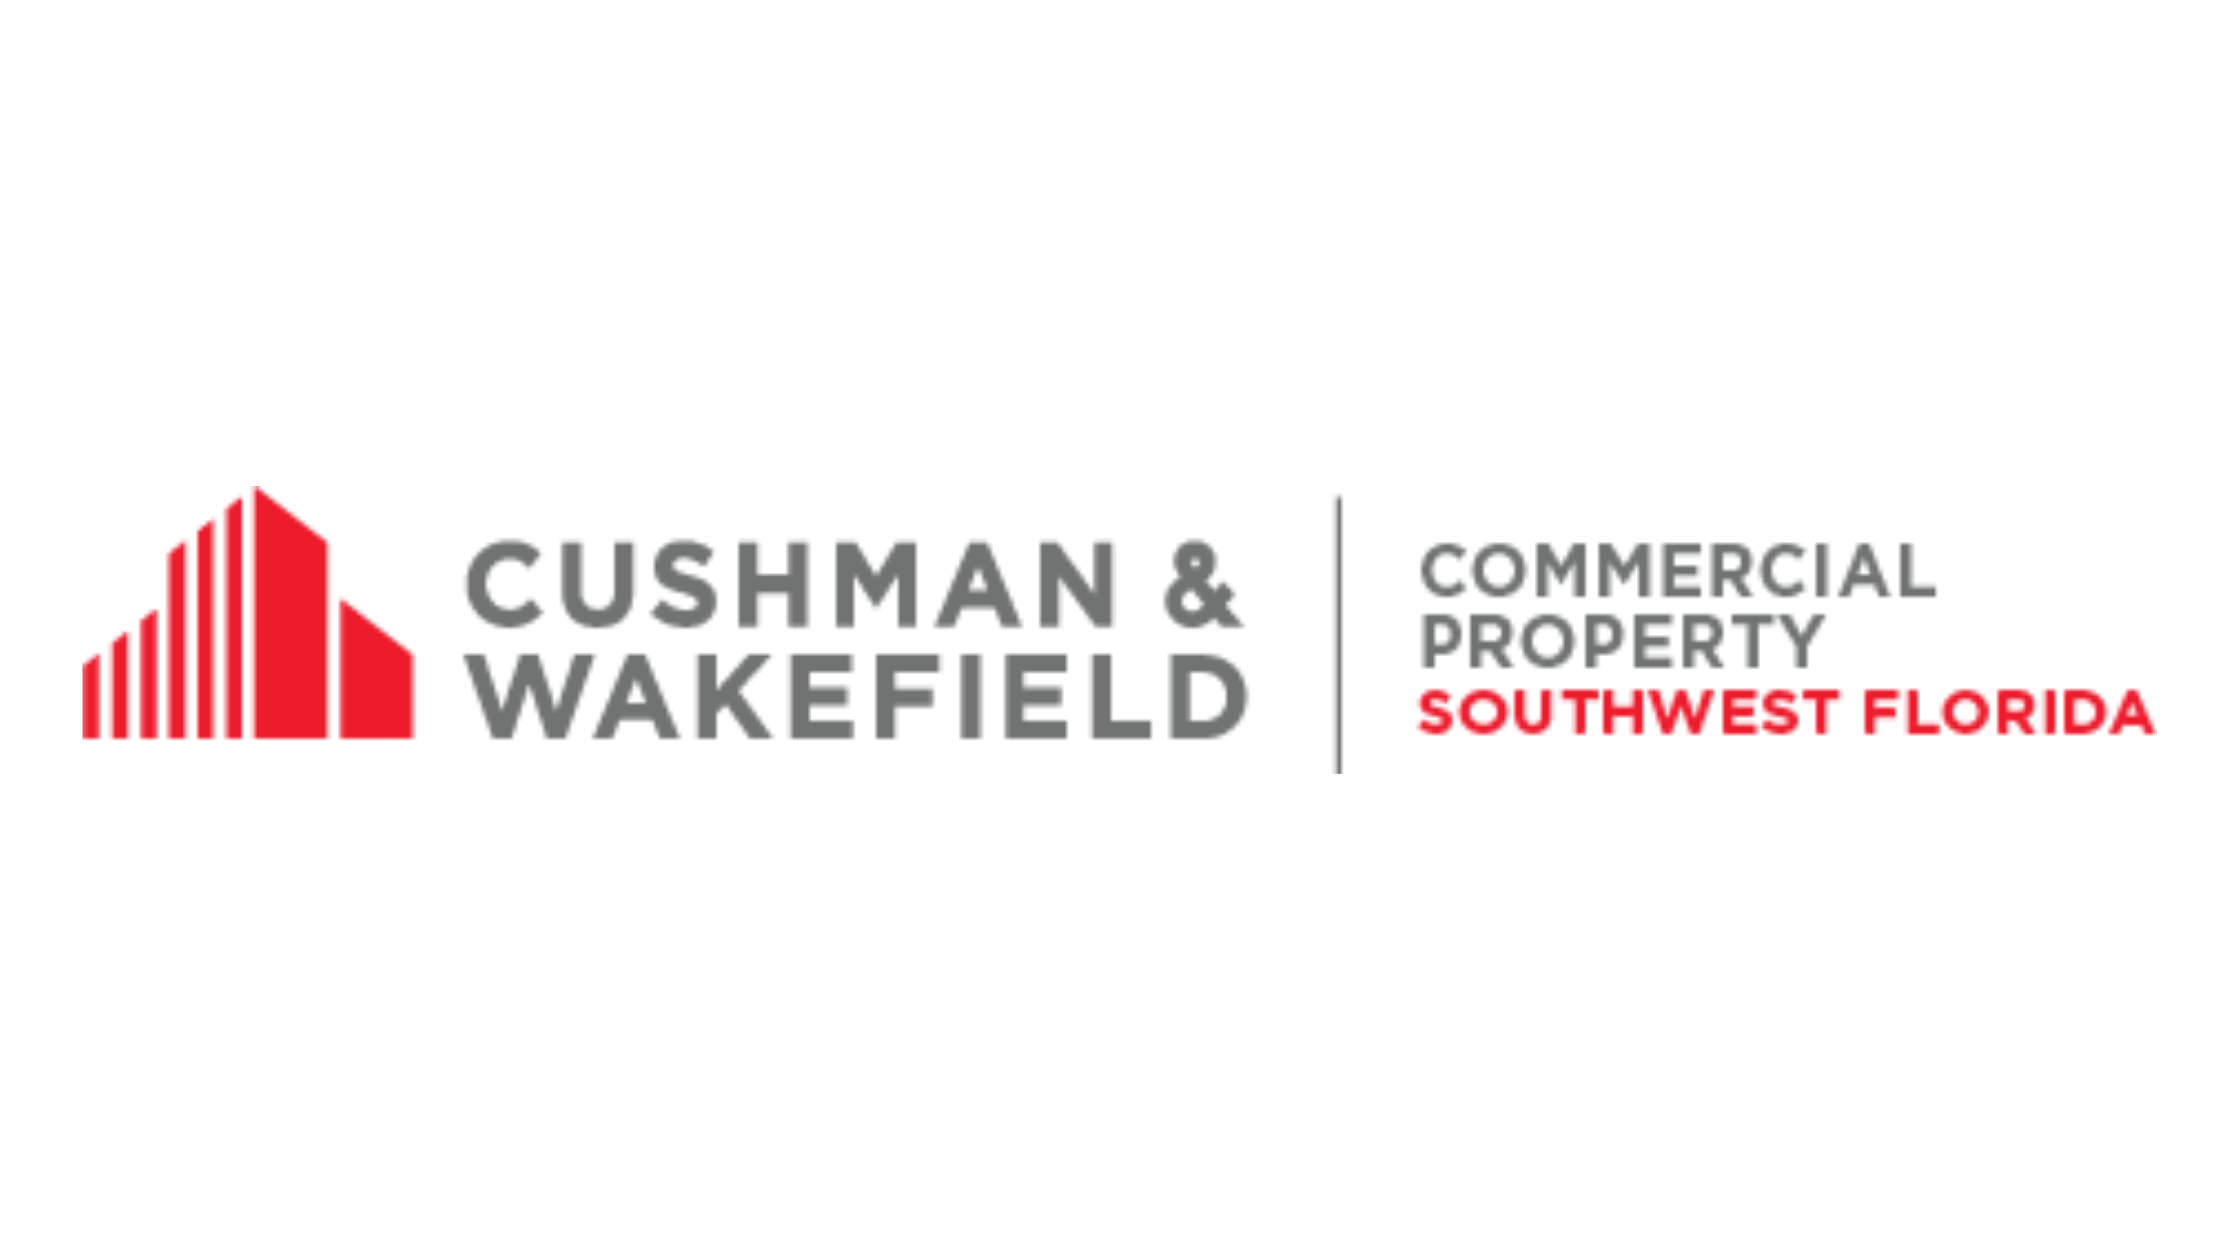 Cushman & Wakefield | Commercial Property Southwest Florida donates to Pace Center for Girls